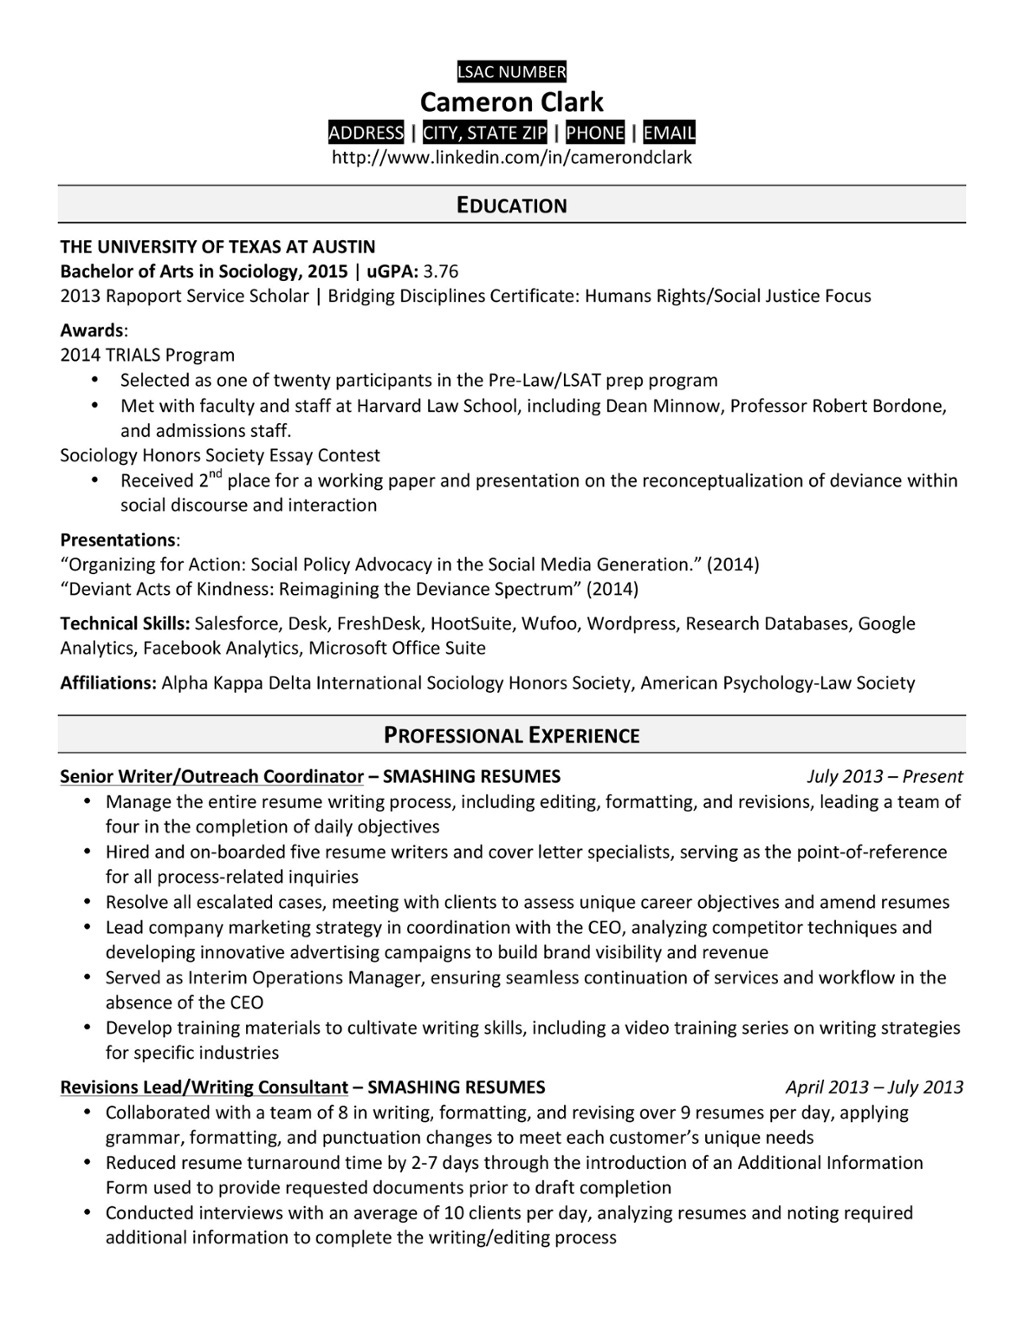 law school resume templates prepping your for of university at template present tense Resume Law School Resume Template Download